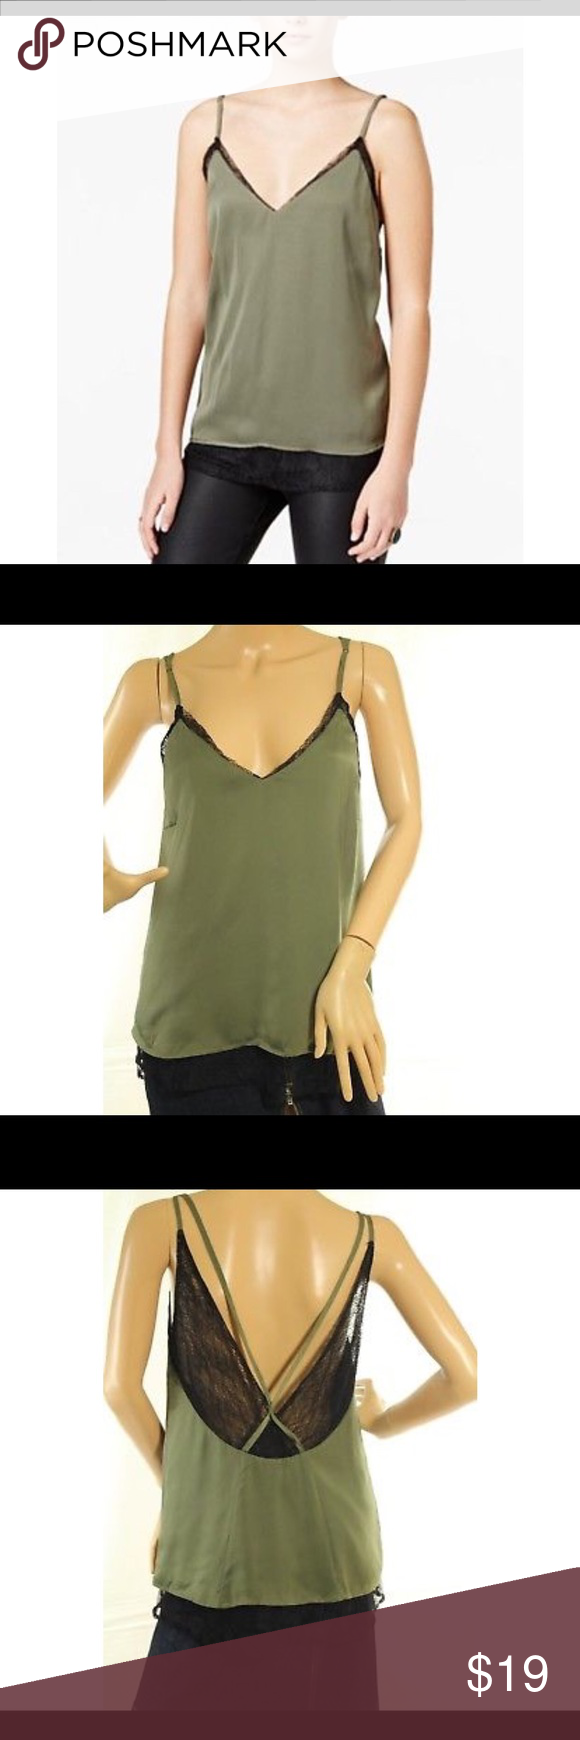 50eb1b45fa3c4c Bar III Green Lace-Trim Layered Camisole Bar III Womens Green Lace-Trim  Layered Camisole Top Armpit to armpit 18